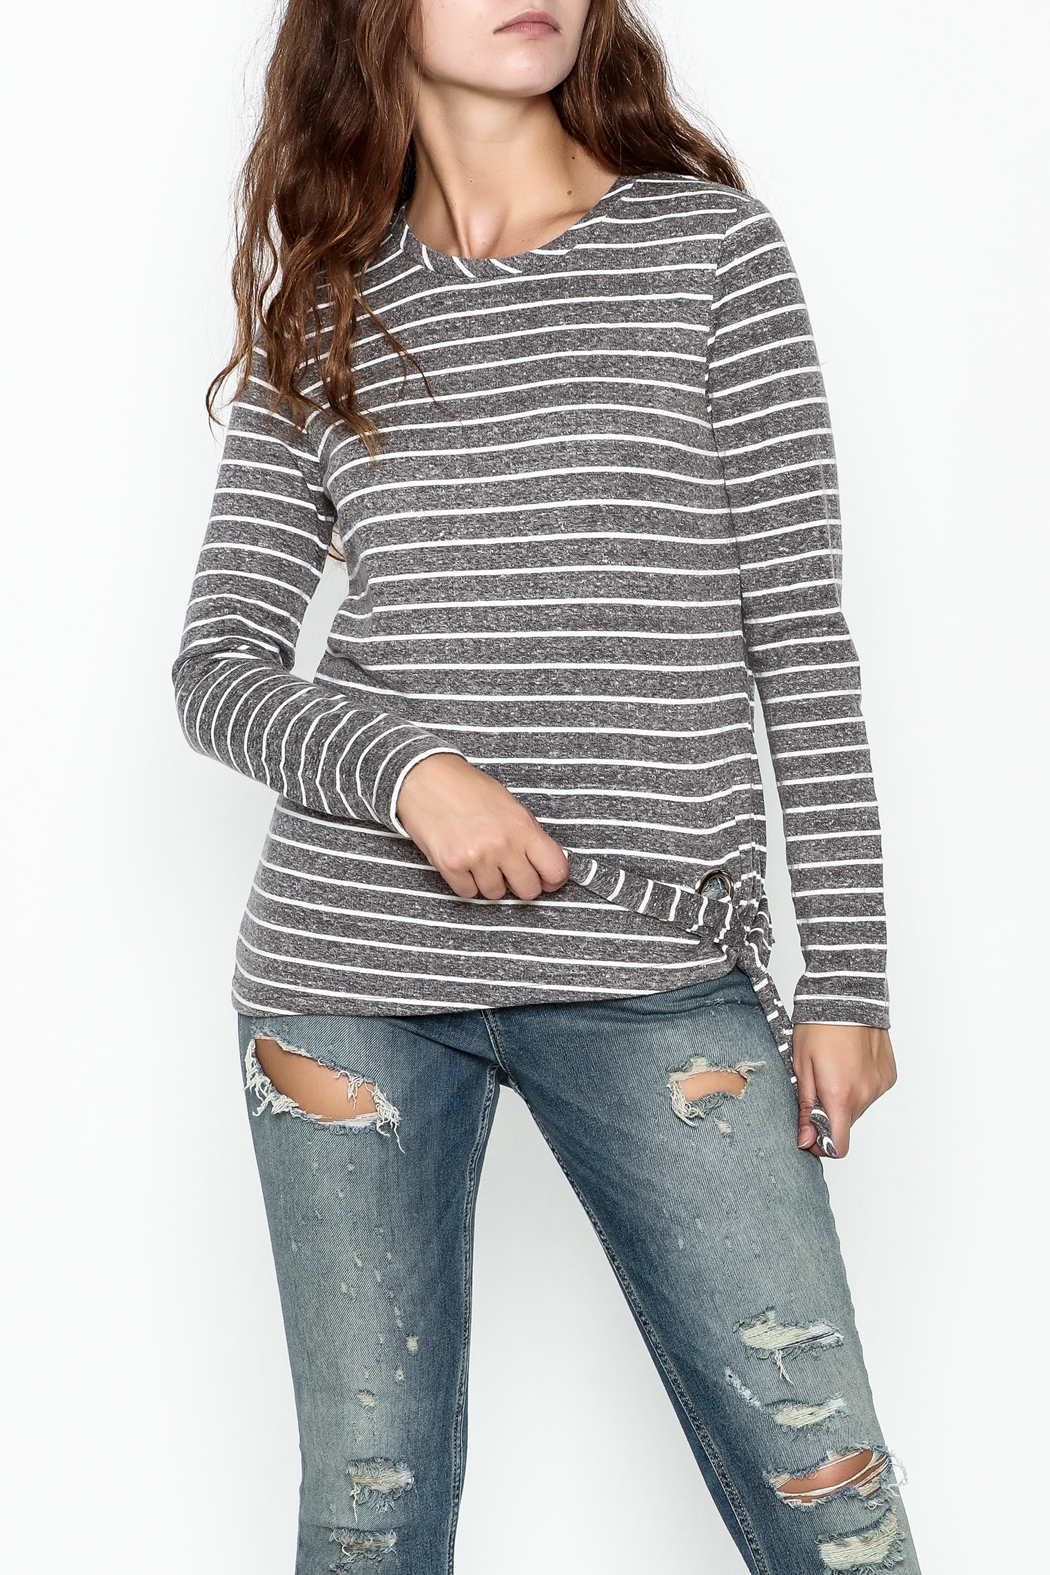 JoyJoy Striped Top - Main Image